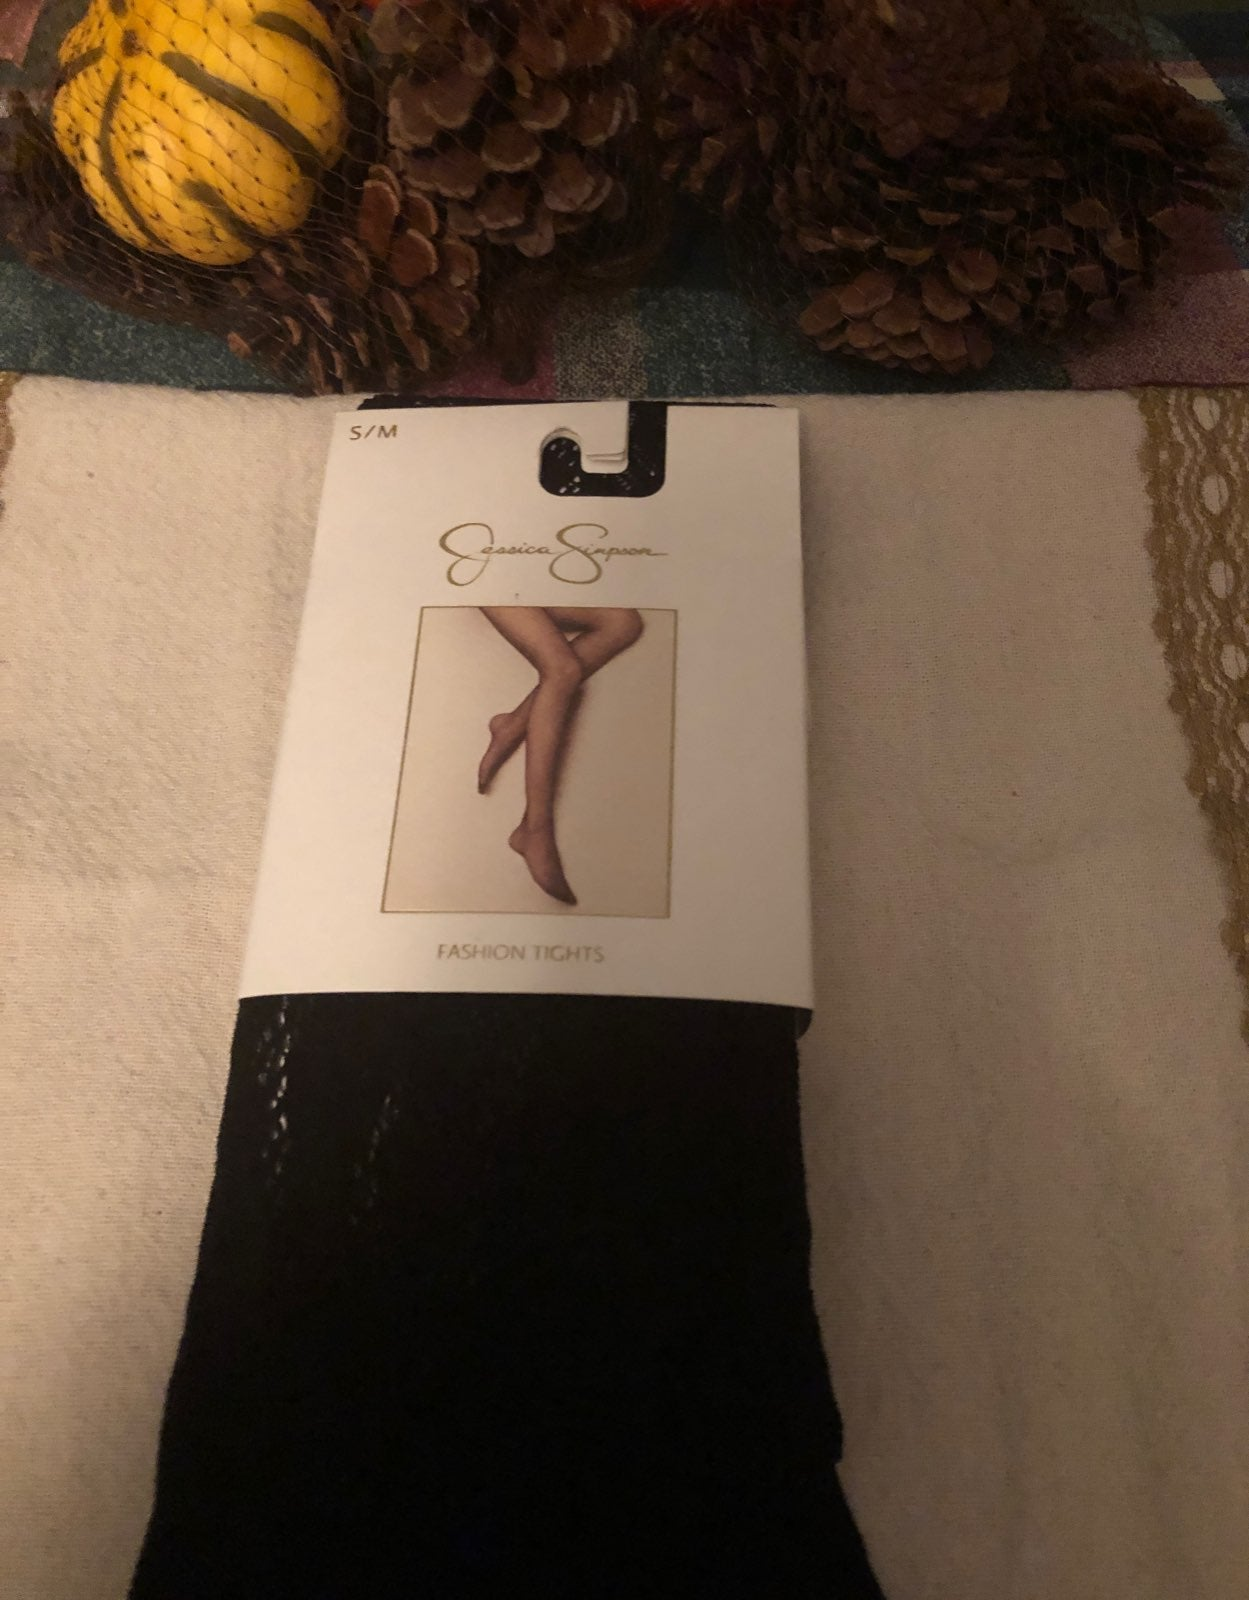 Jessica Simpson tights